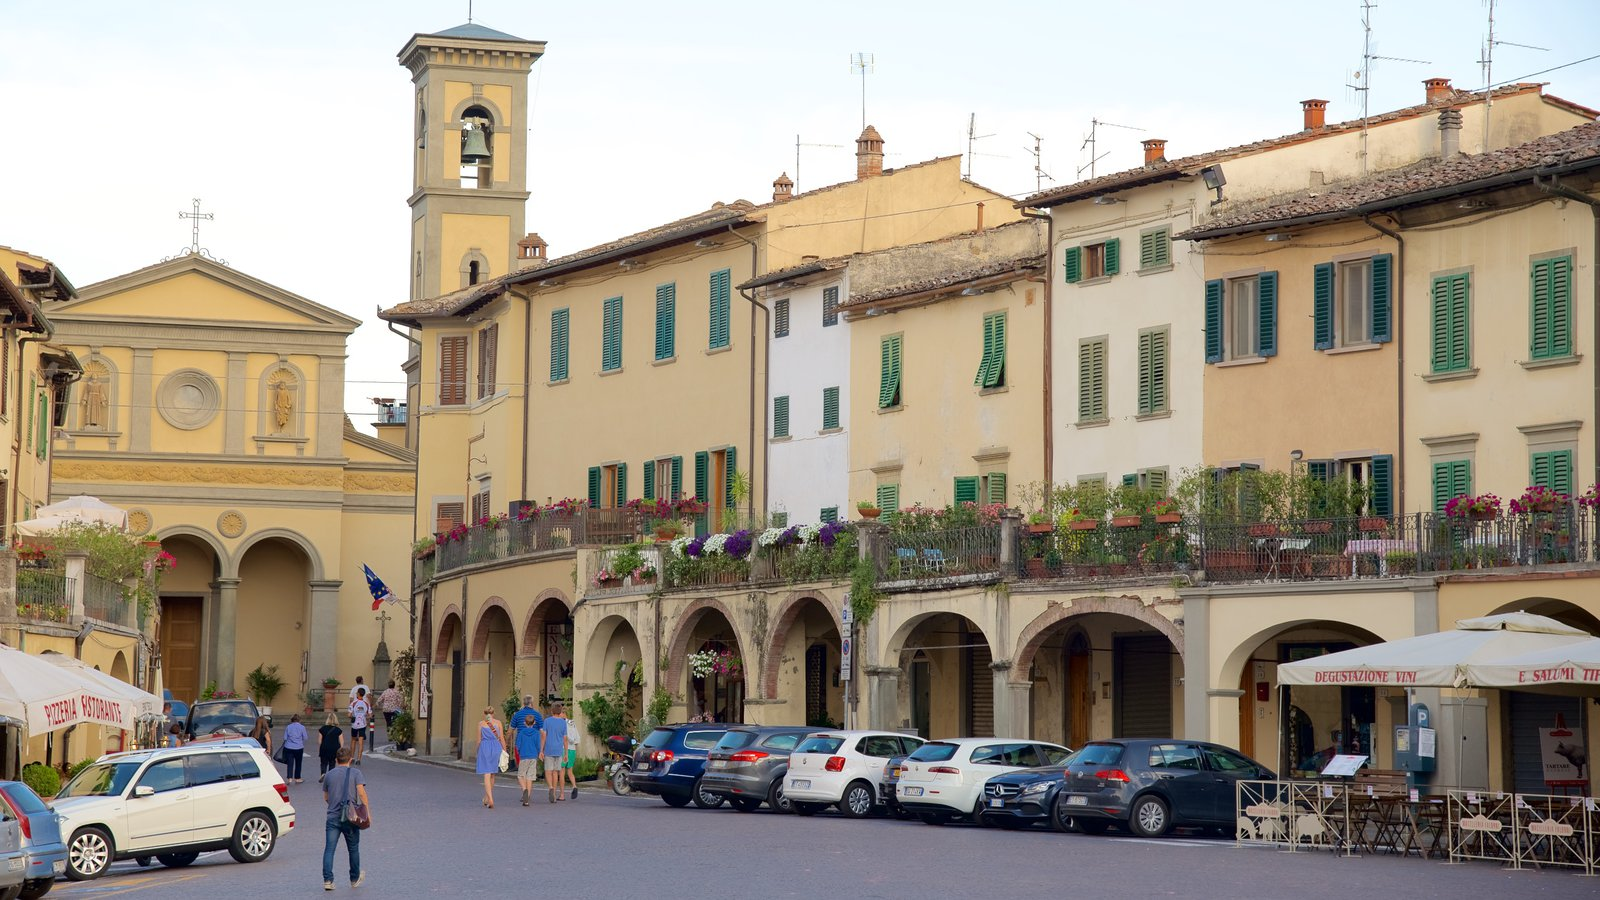 Greve in Chianti featuring heritage architecture, street scenes and a small town or village